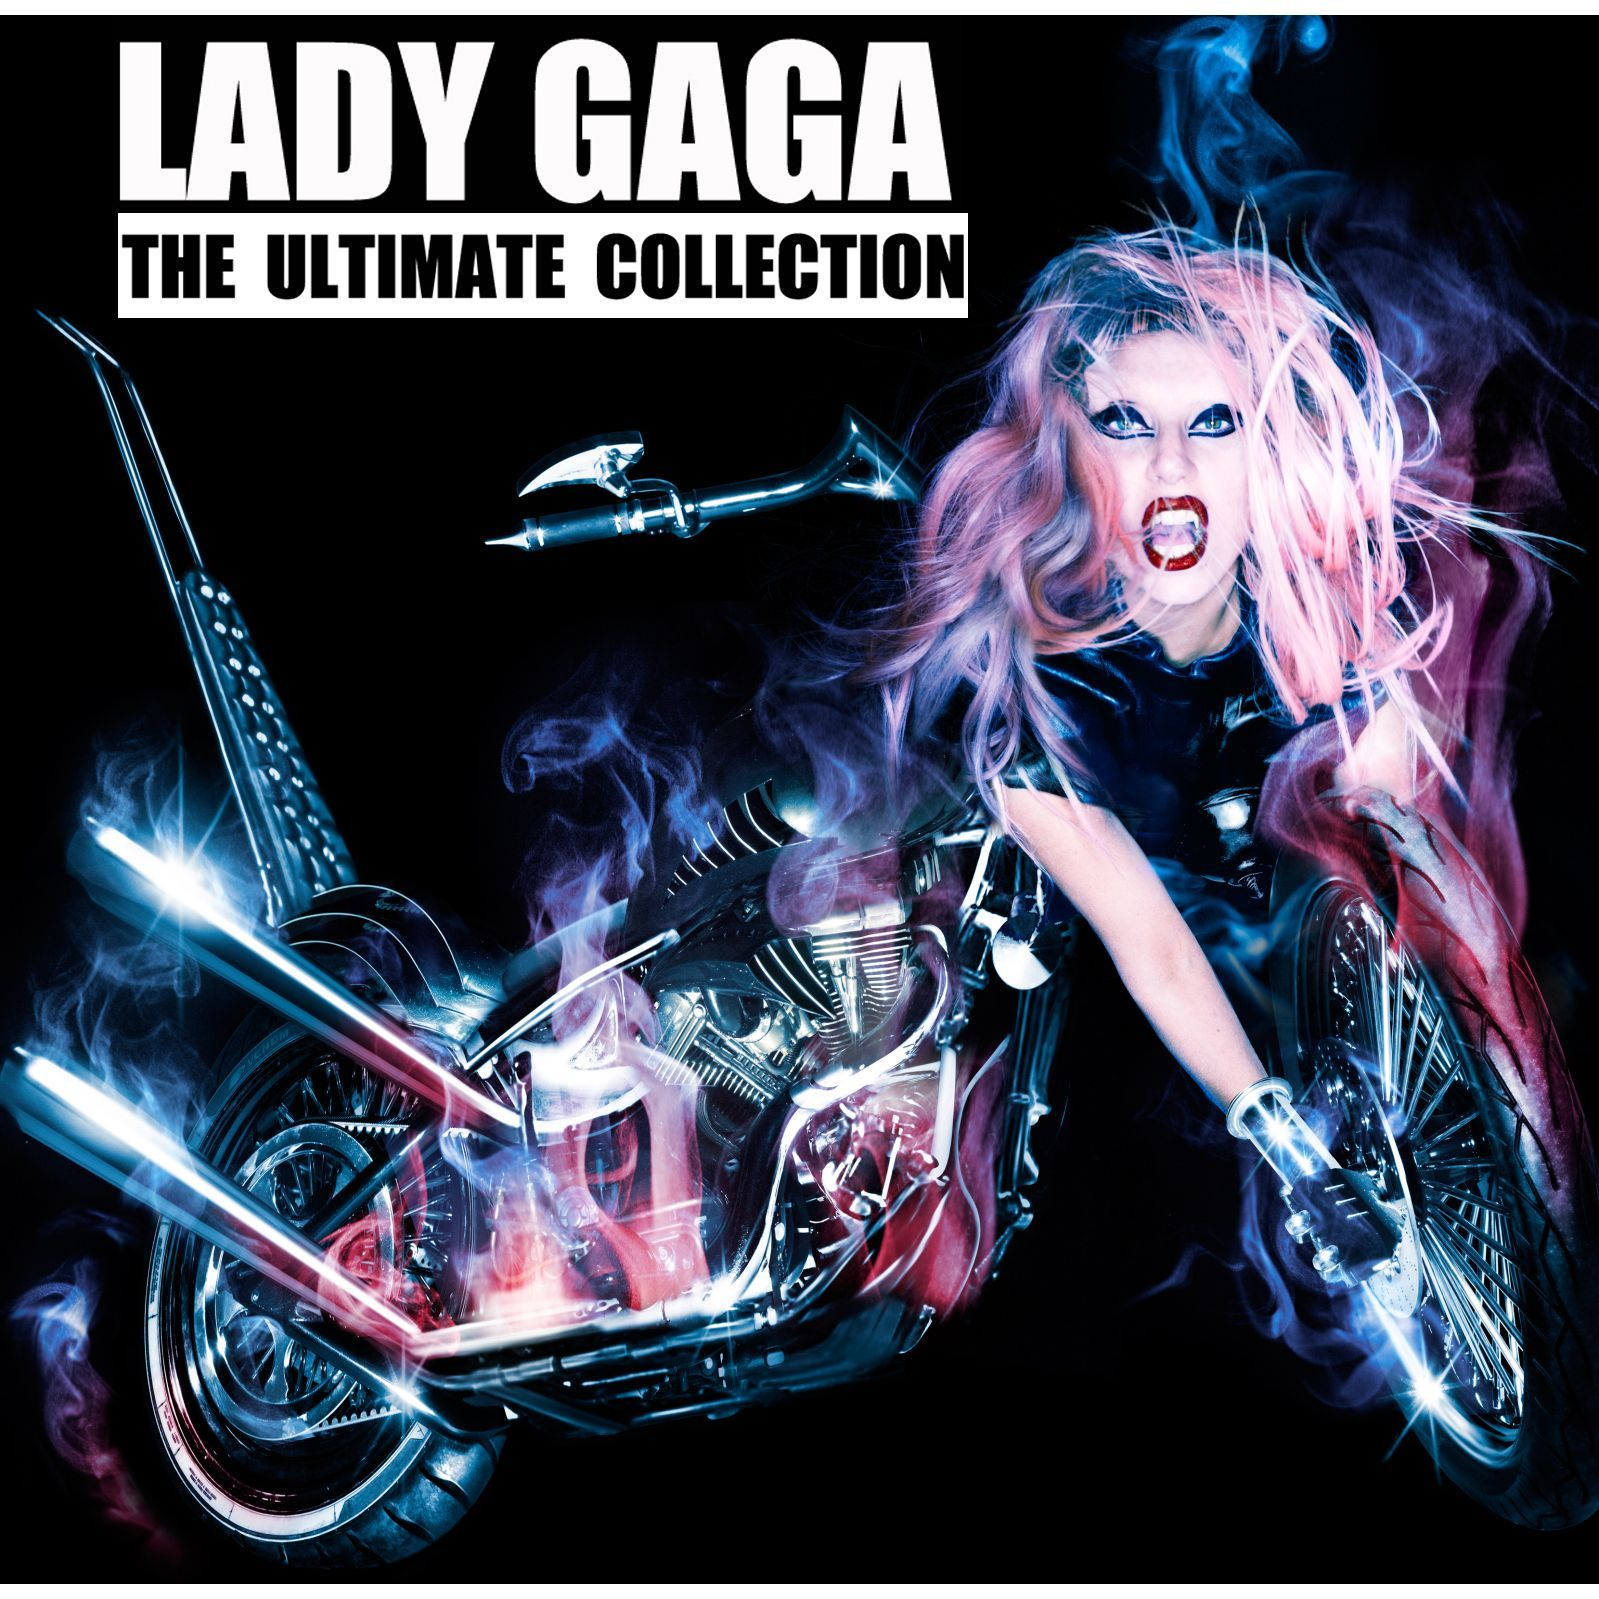 Lady Gaga Album Cover The Ultimate Collection Cd2 Lady Gaga Mp3 Buy Full Rony